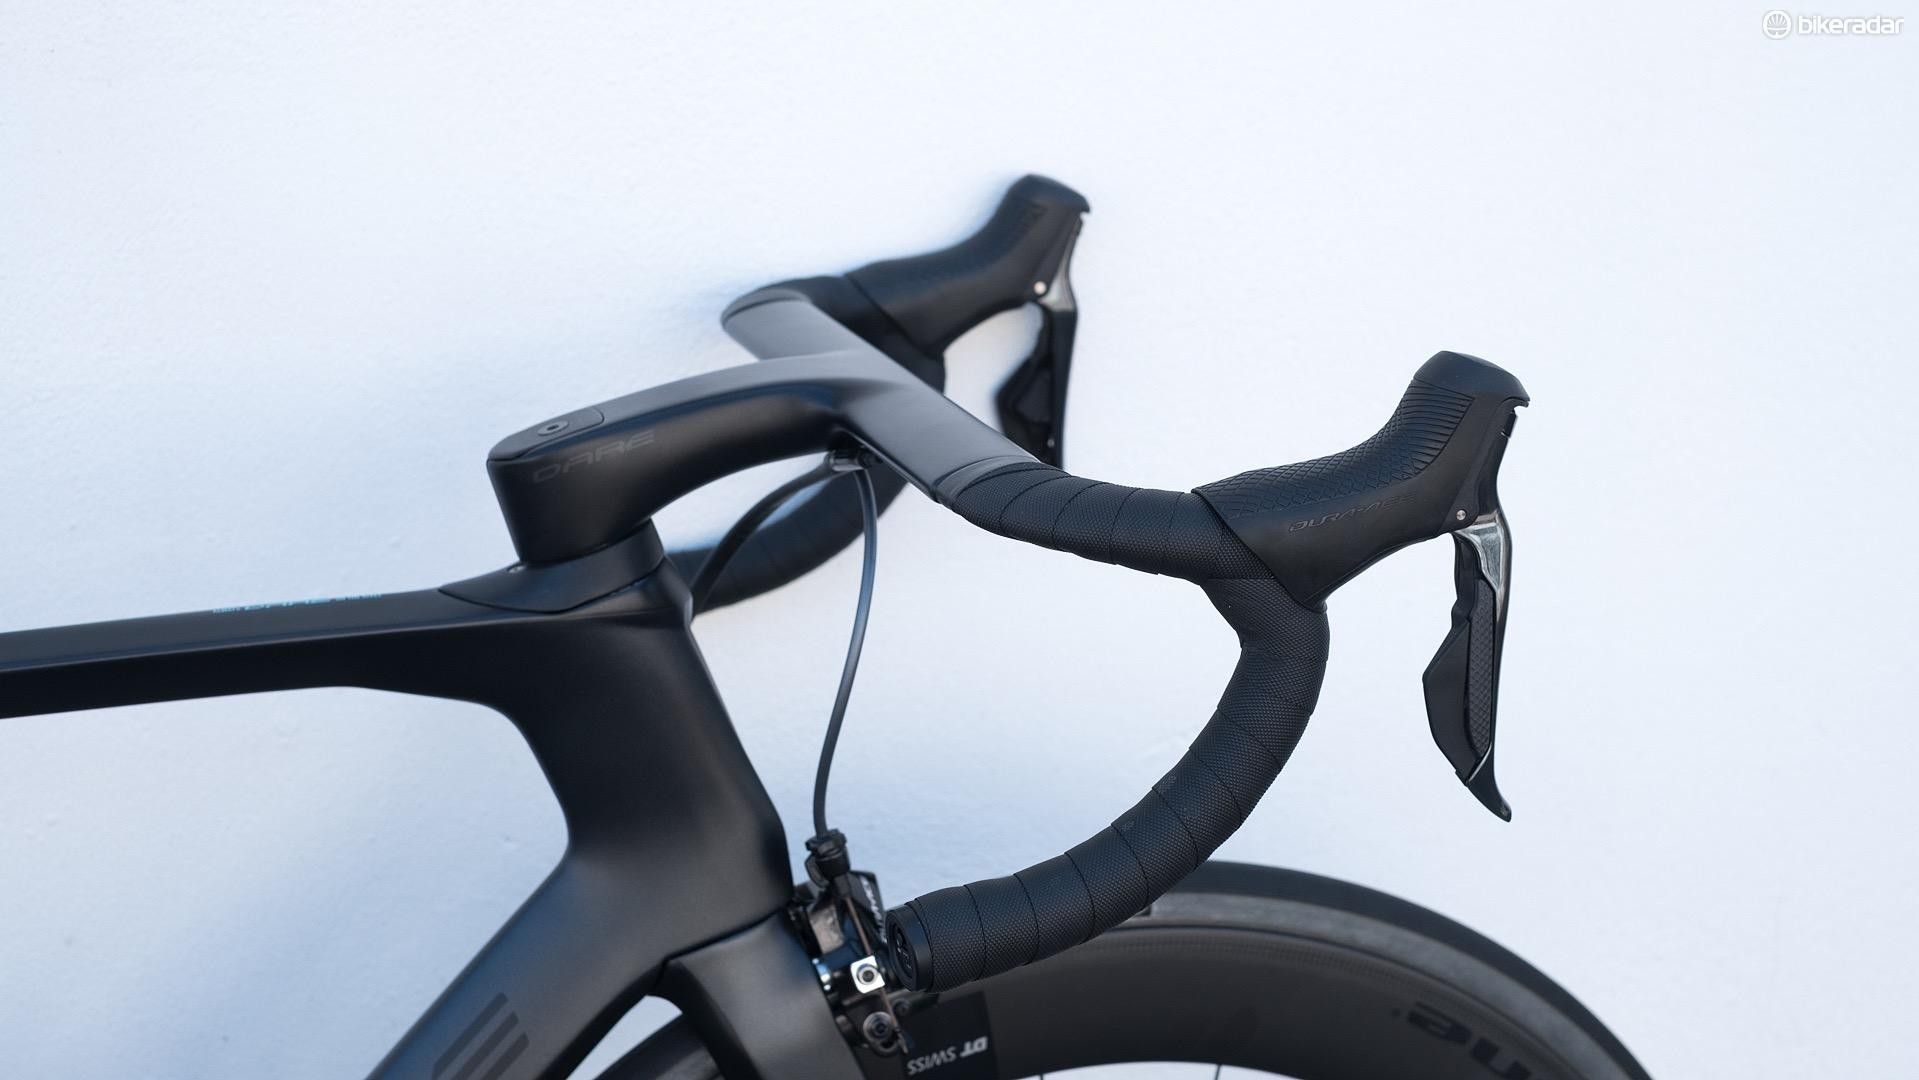 Dare's Aero cockpit is available in a full 12 sizes and will also be sold separately for €288 / $355